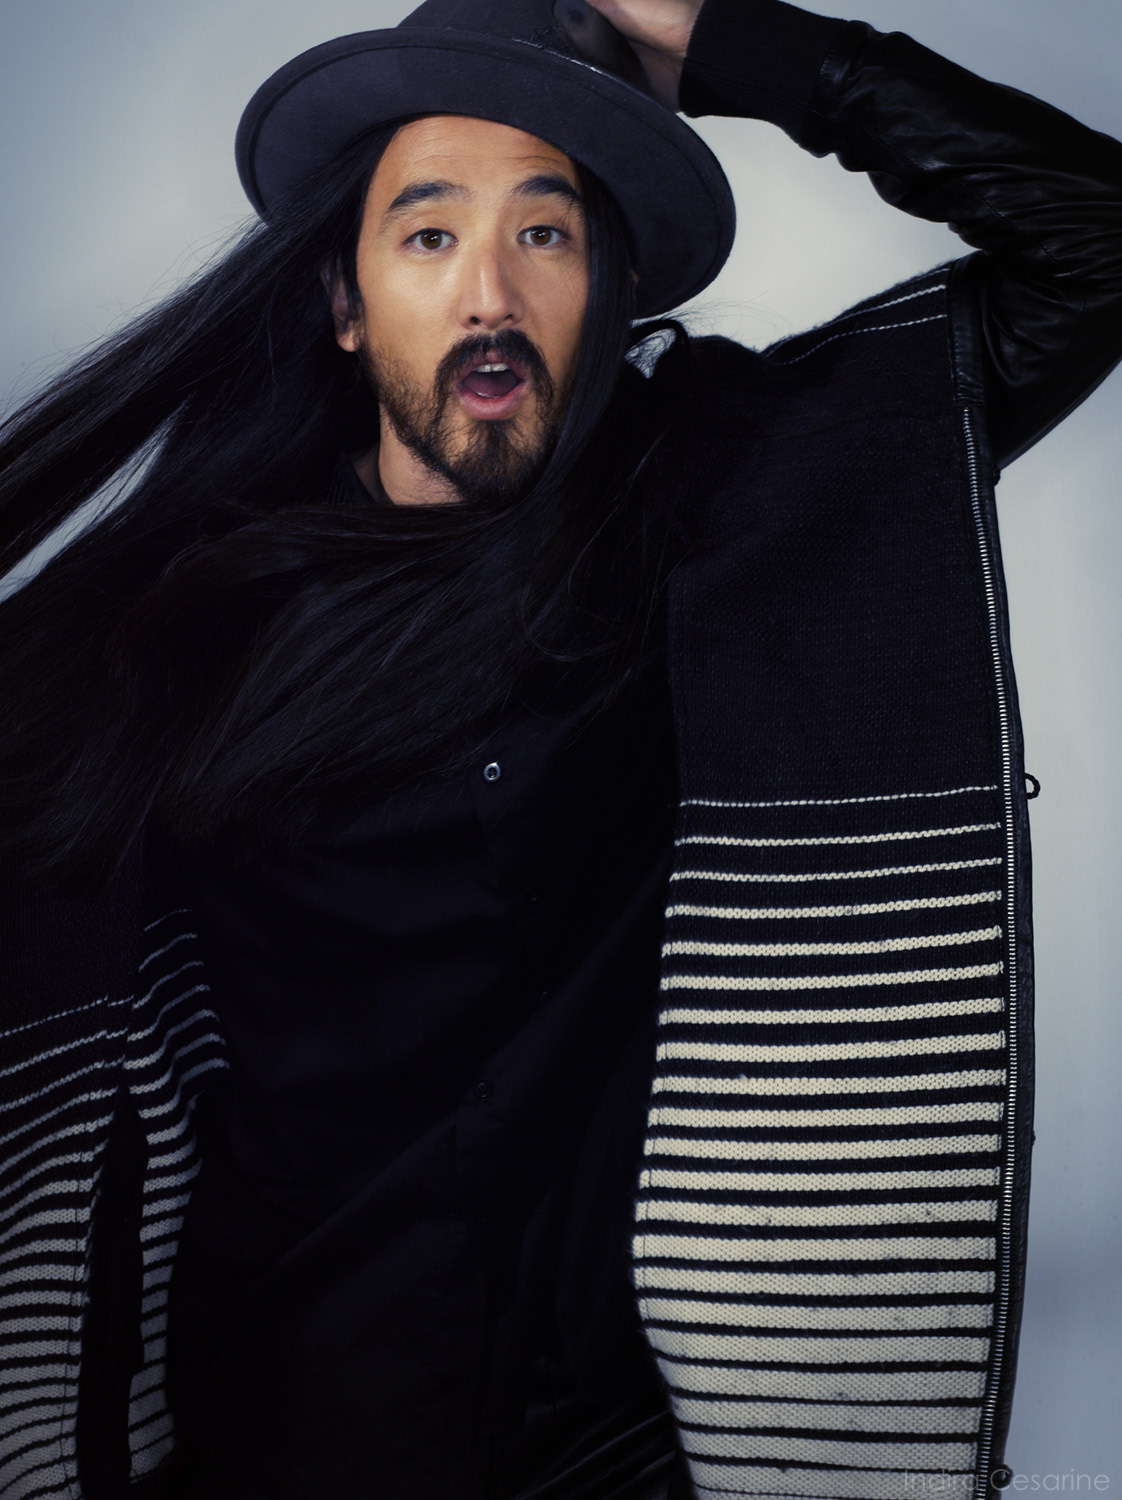 Steve-Aoki-The-Untitled-Magazine-Photography-by-Indira-Cesarine-007.jpg